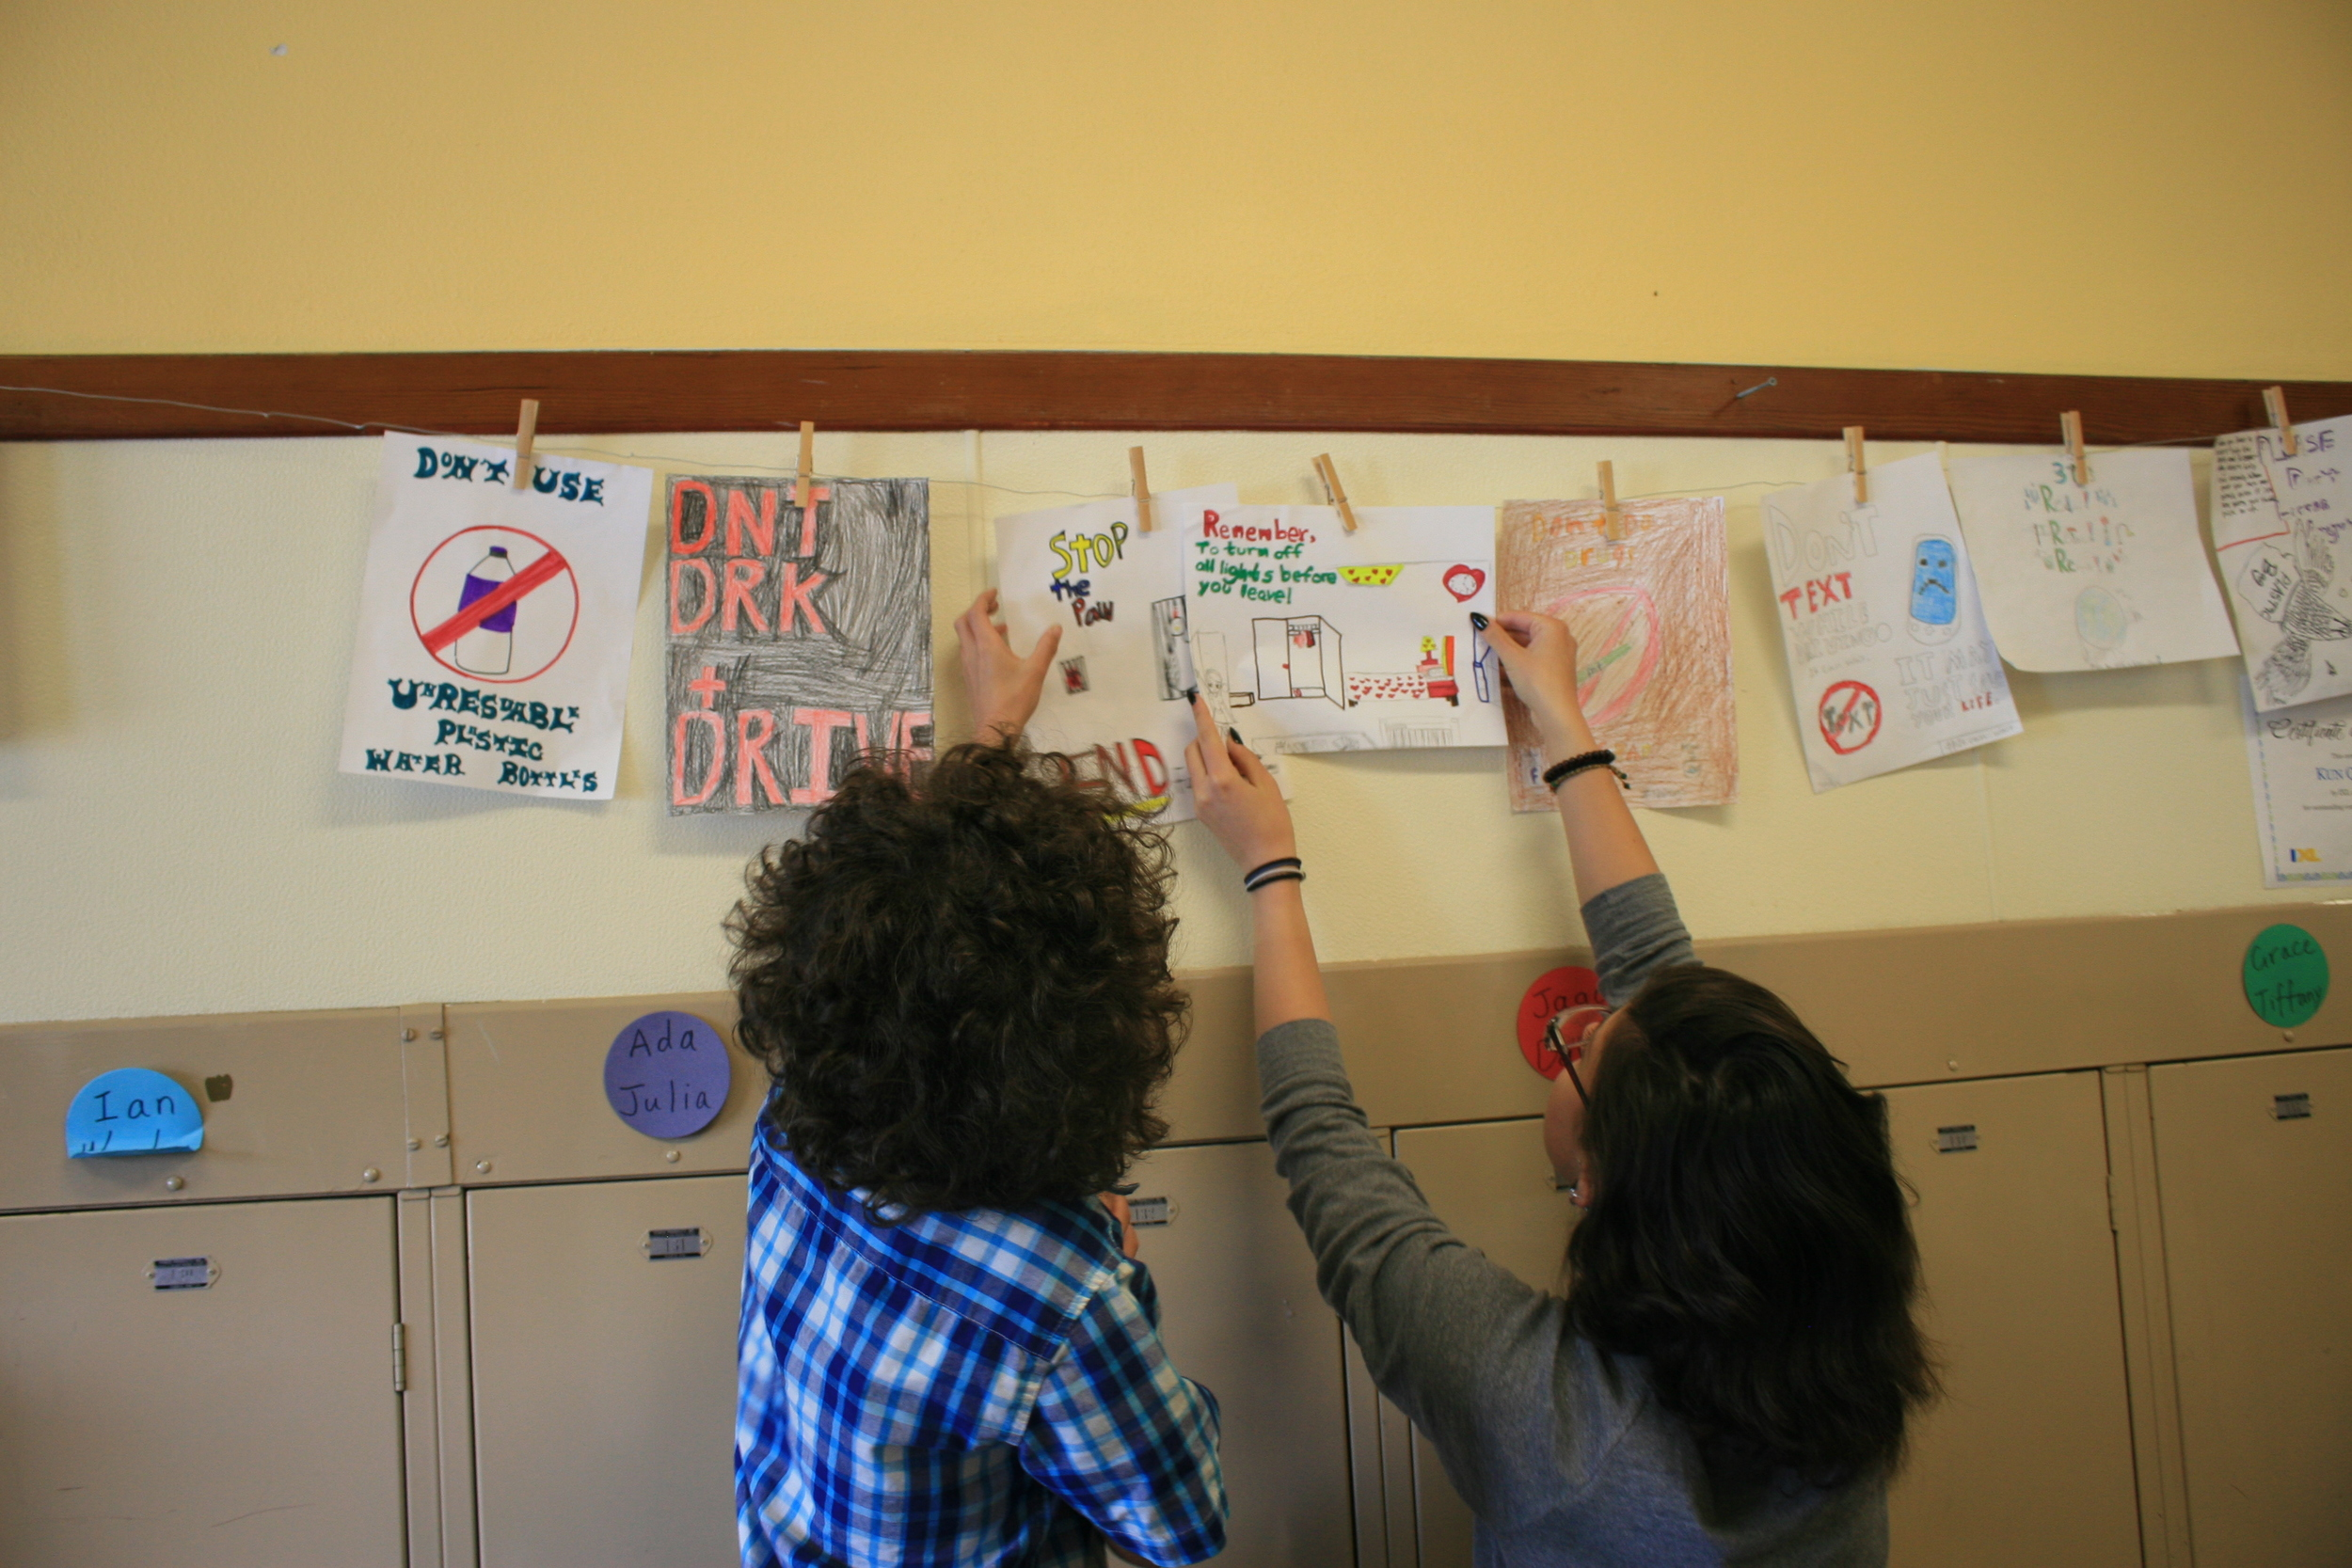 Students are helping each other hang their PSAs up after class.